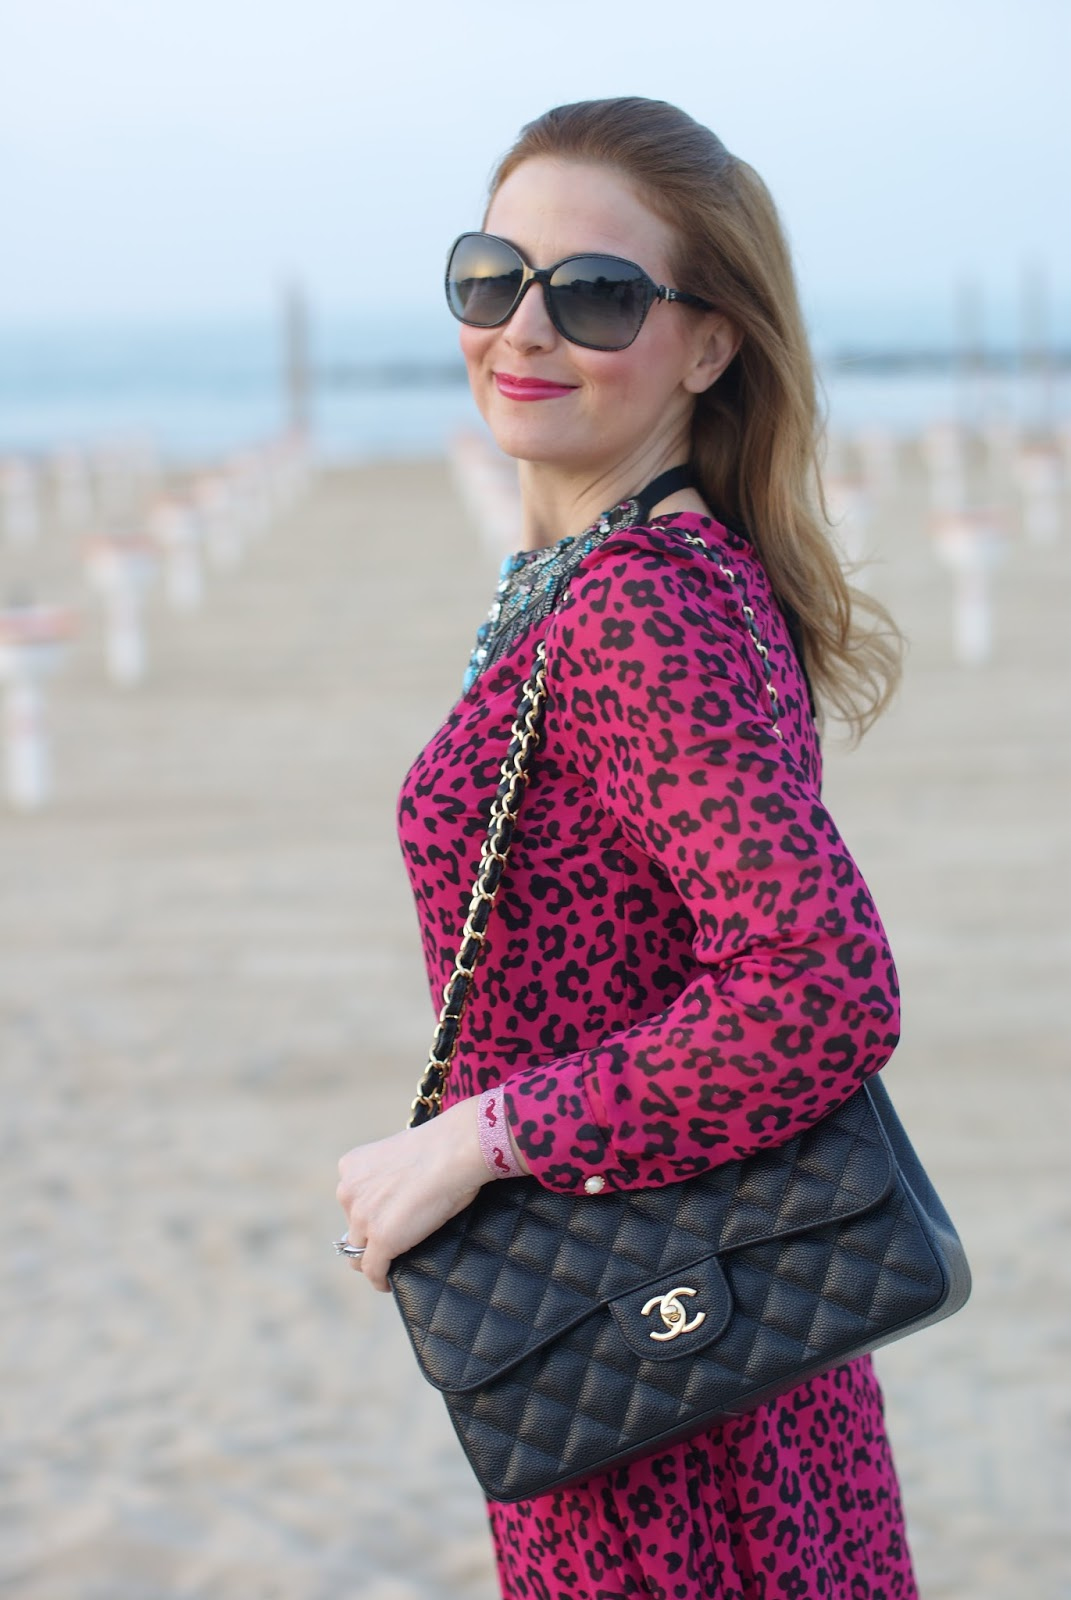 Chanel bag, pink leopard dress, pink dress, Fashion and Cookies fashion blog, fashion blogger style